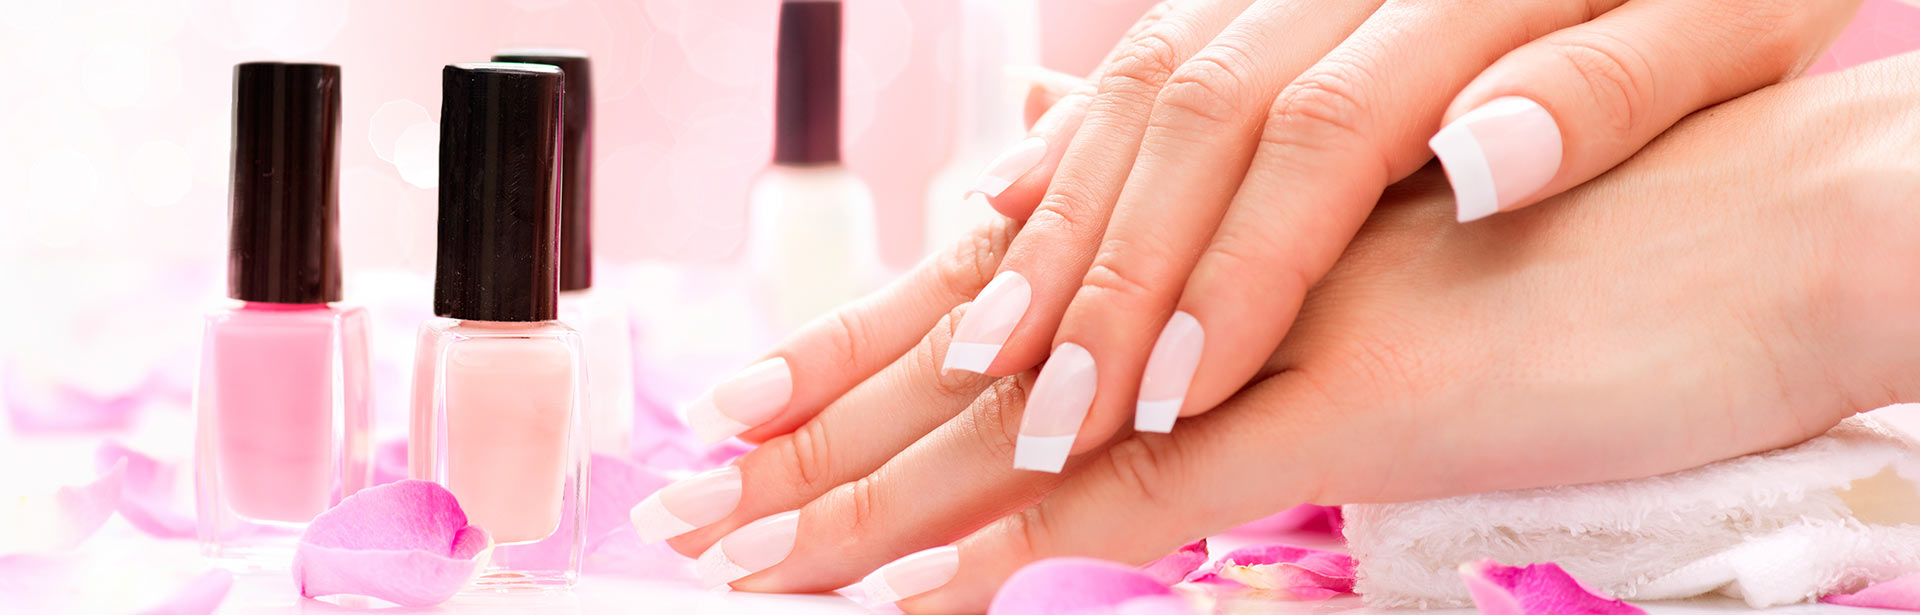 Nageldesin im Nagelstudio Beauty Nail in Innsbruck